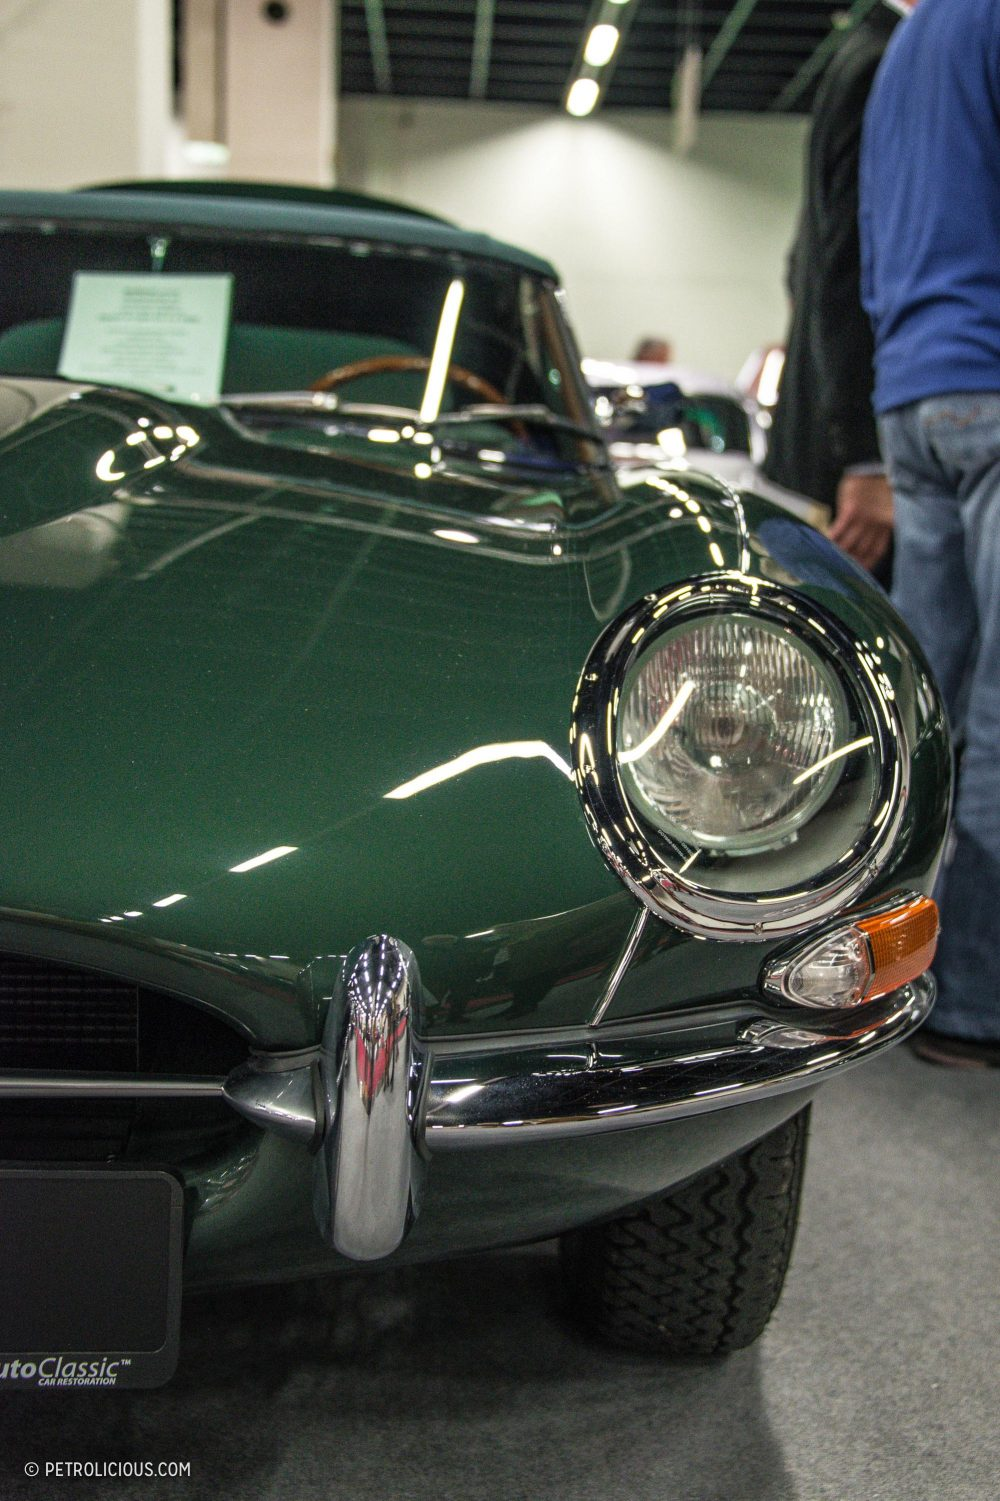 Retro Classics Cologne Ended Yesterday Here S What You Missed